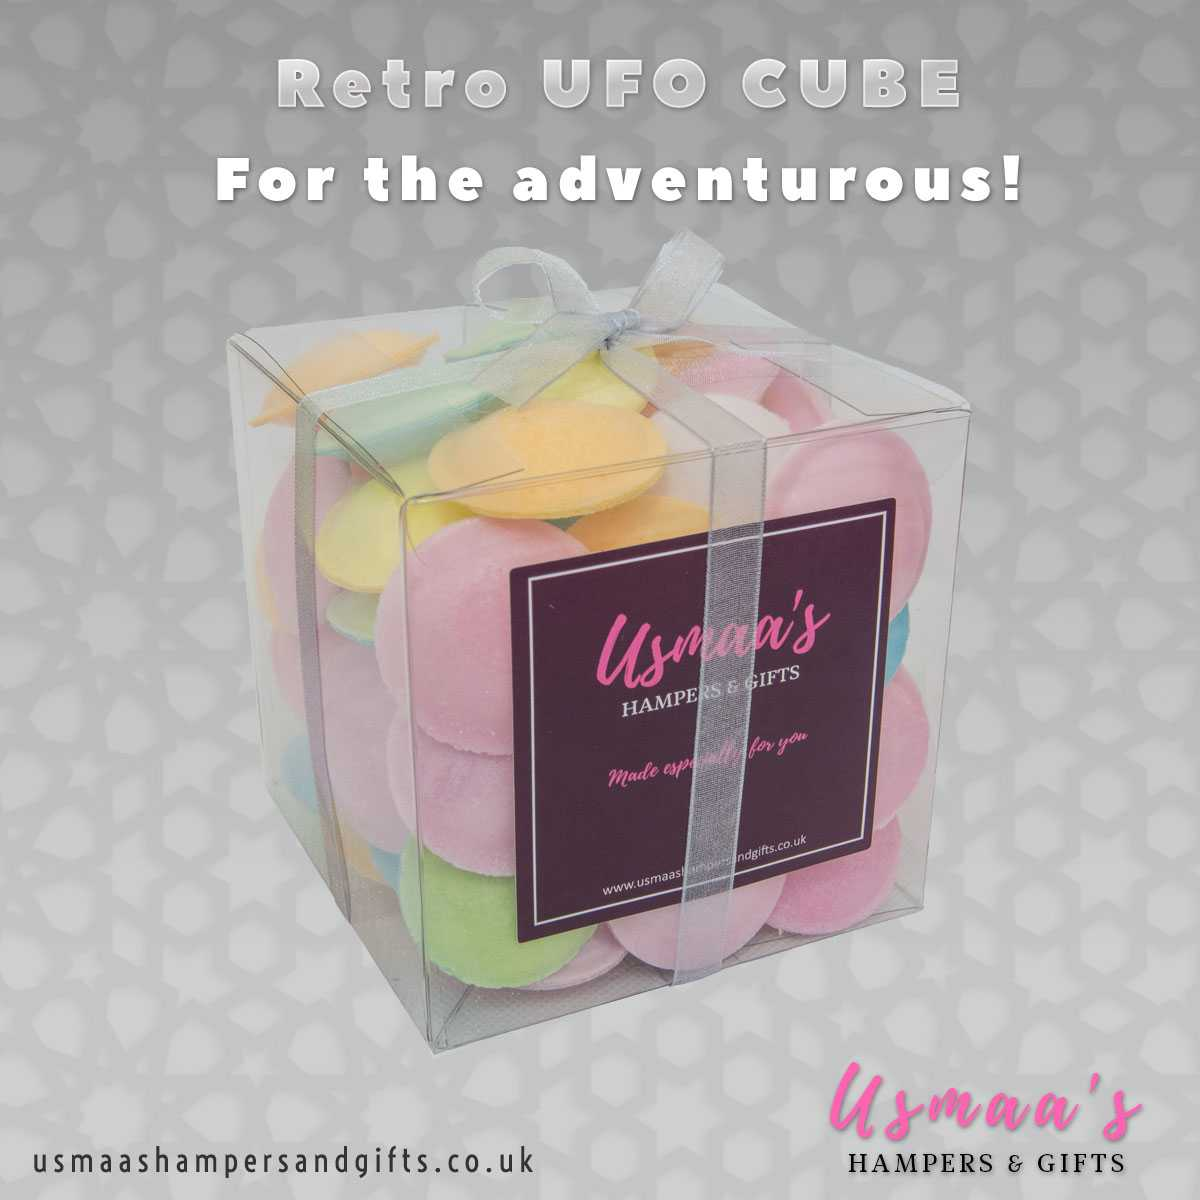 Retro UFO Cube - Usmaas Hampers & Gifts